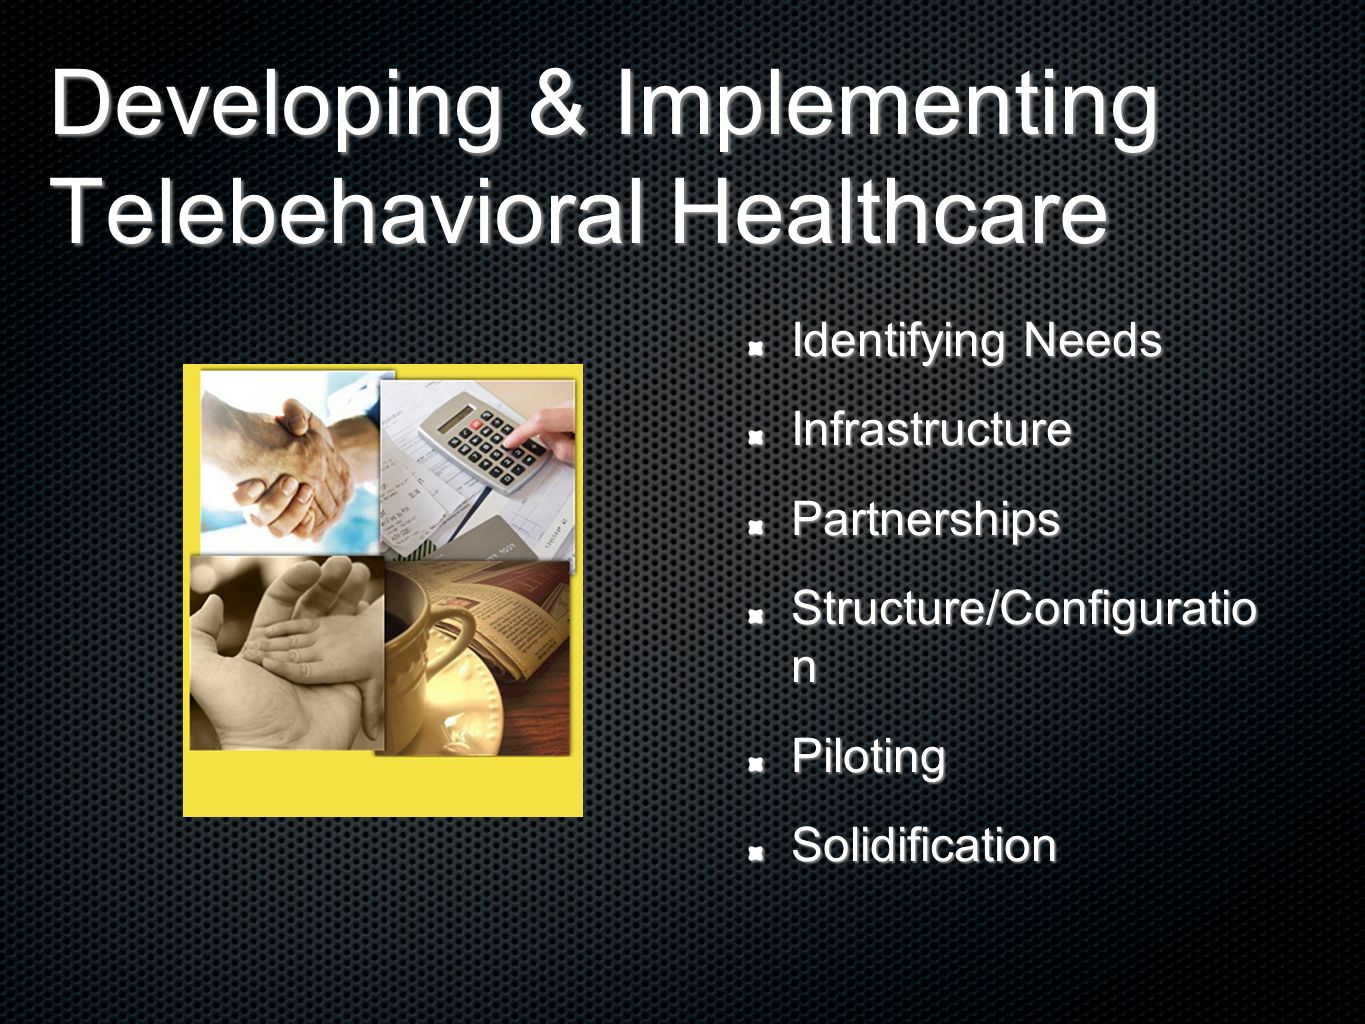 Developing & Implementing Telebehavioral Healthcare Identifying Needs InfrastructurePartnerships Structure/Configuratio n PilotingSolidification